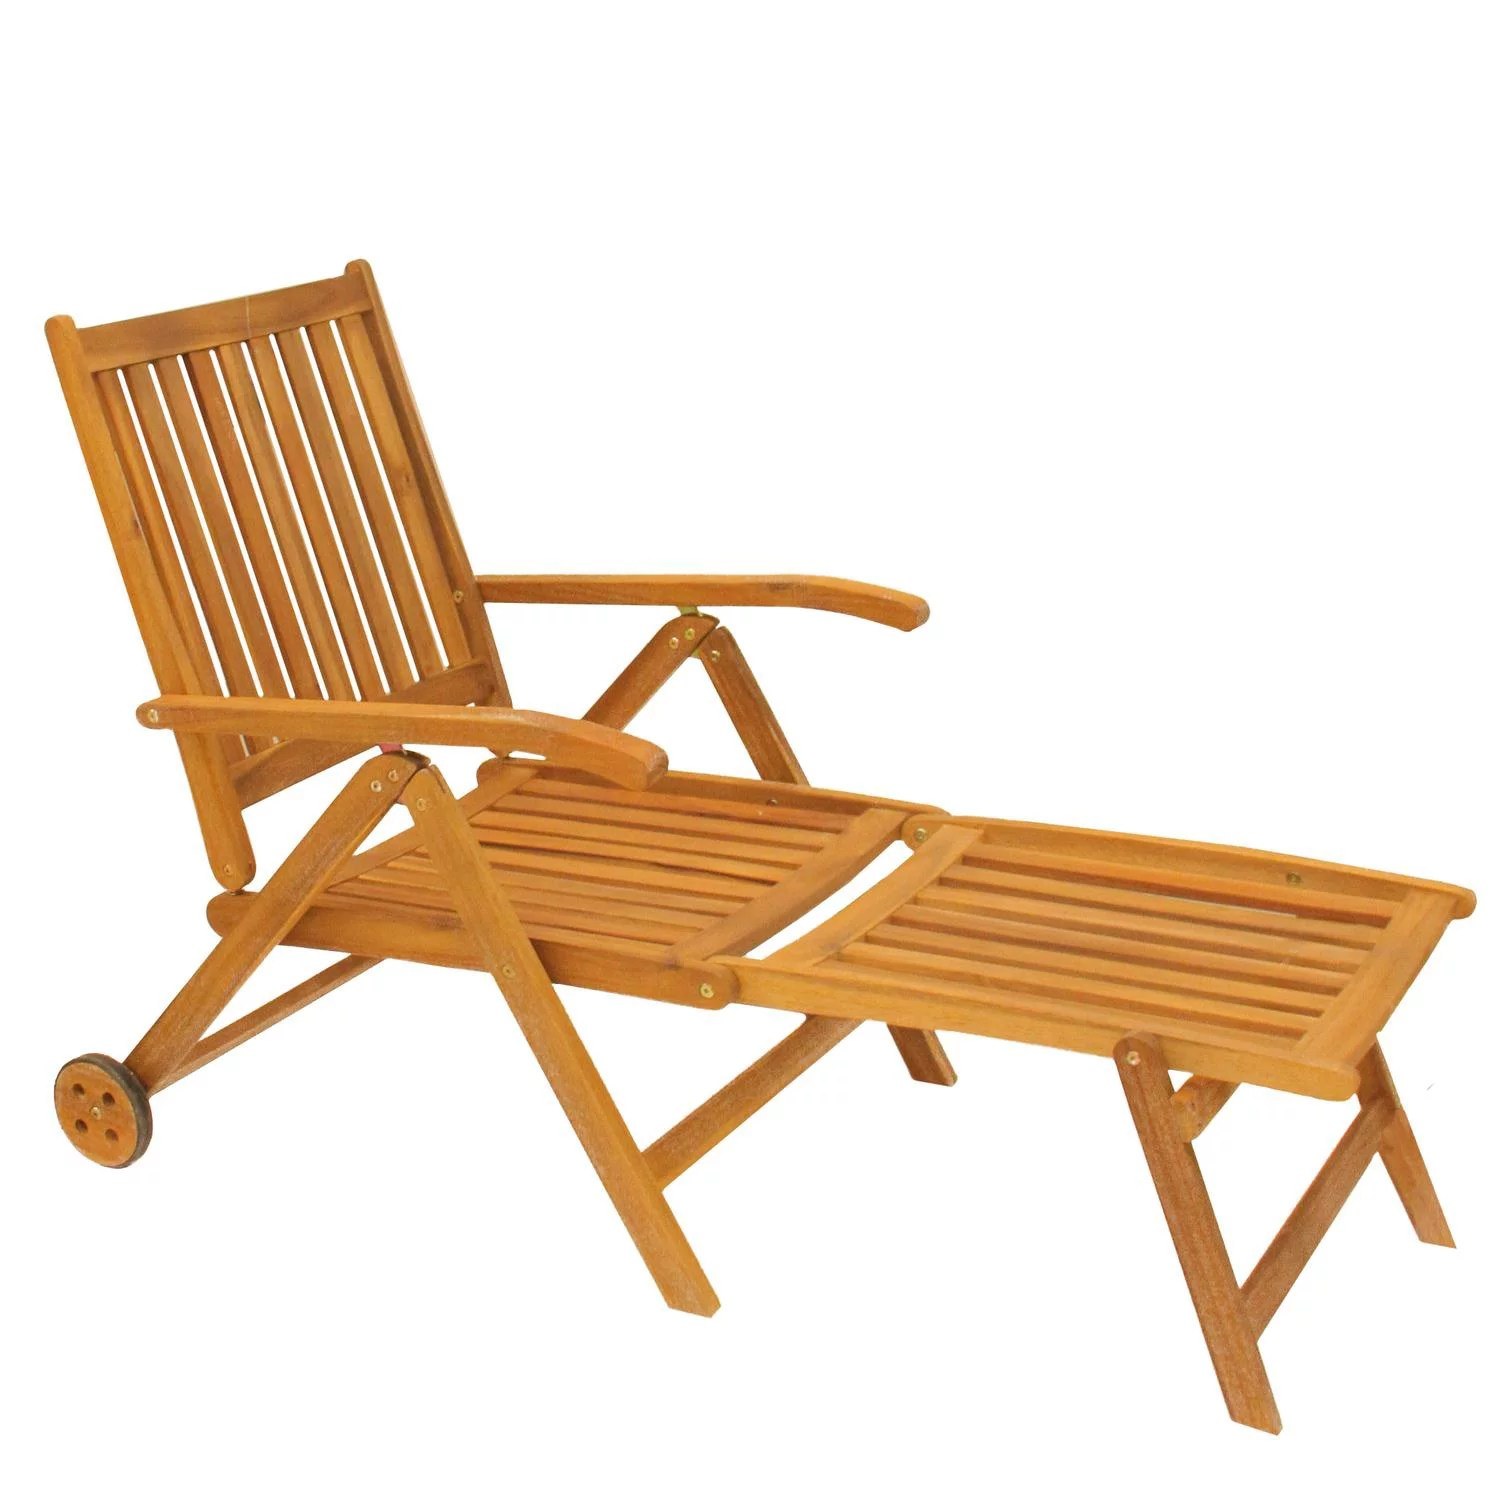 55 acacia wood outdoor patio chaise lounge chair